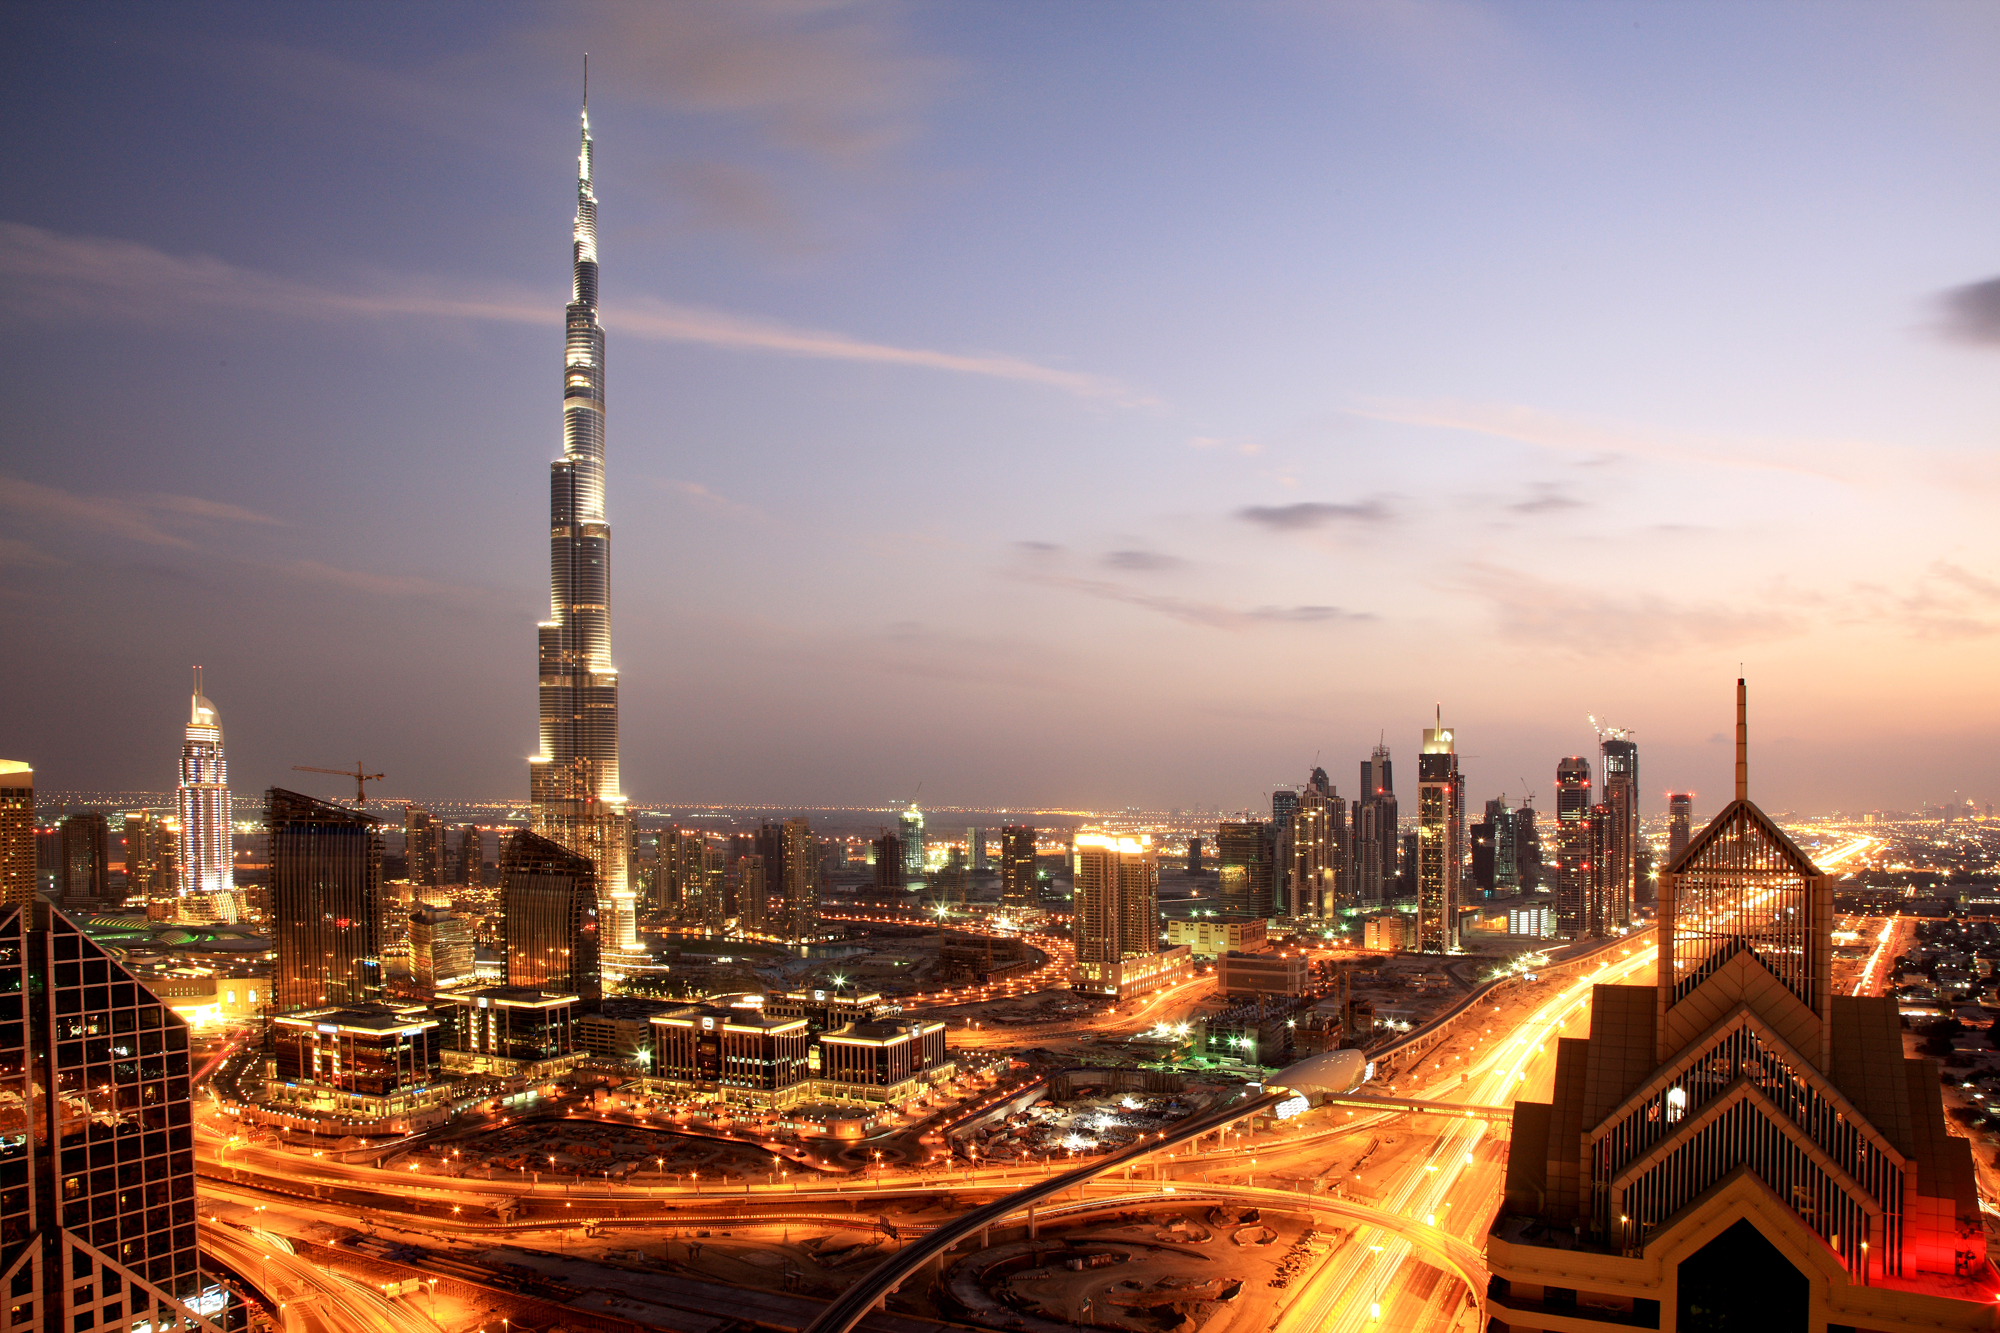 Dubai, with the Burj Khalifa to the left, the tallest building in the world.